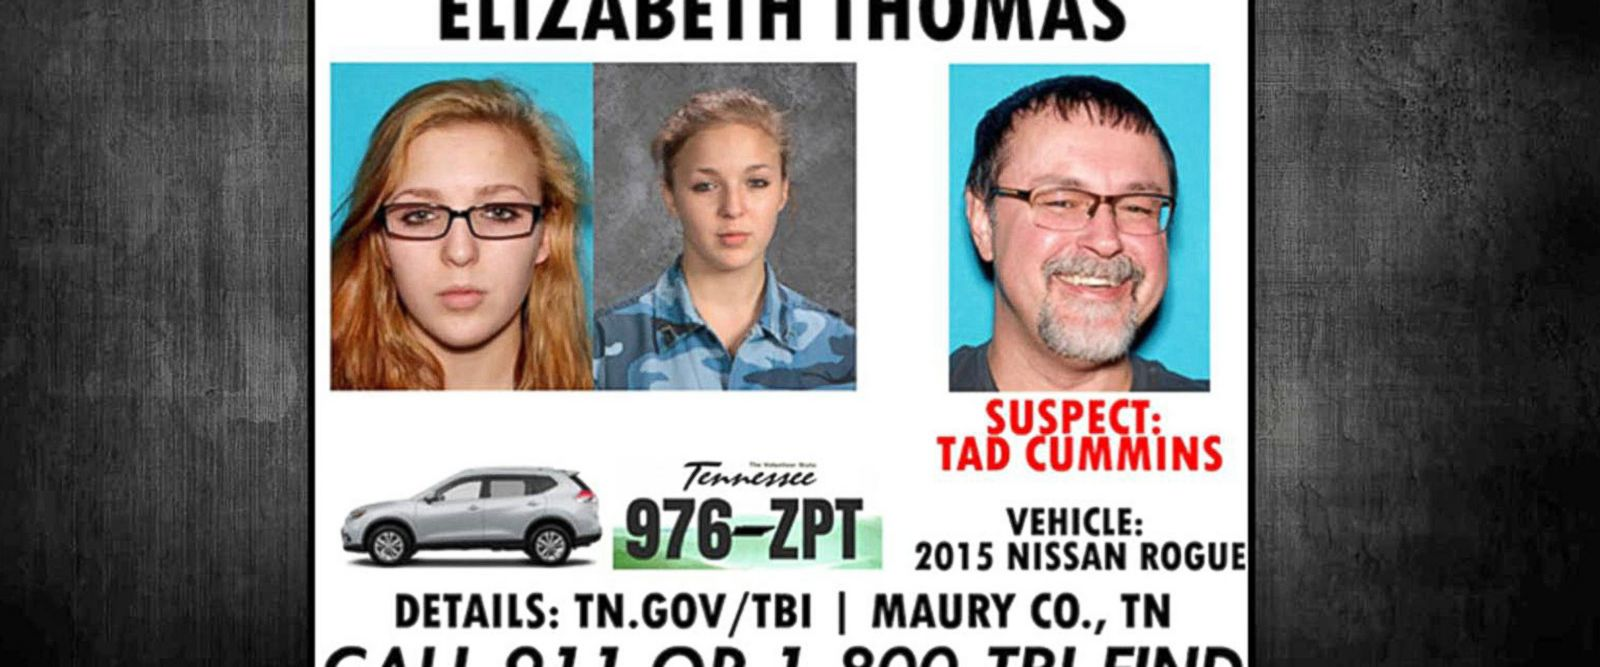 VIDEO: New details on relationship between former teacher and missing student